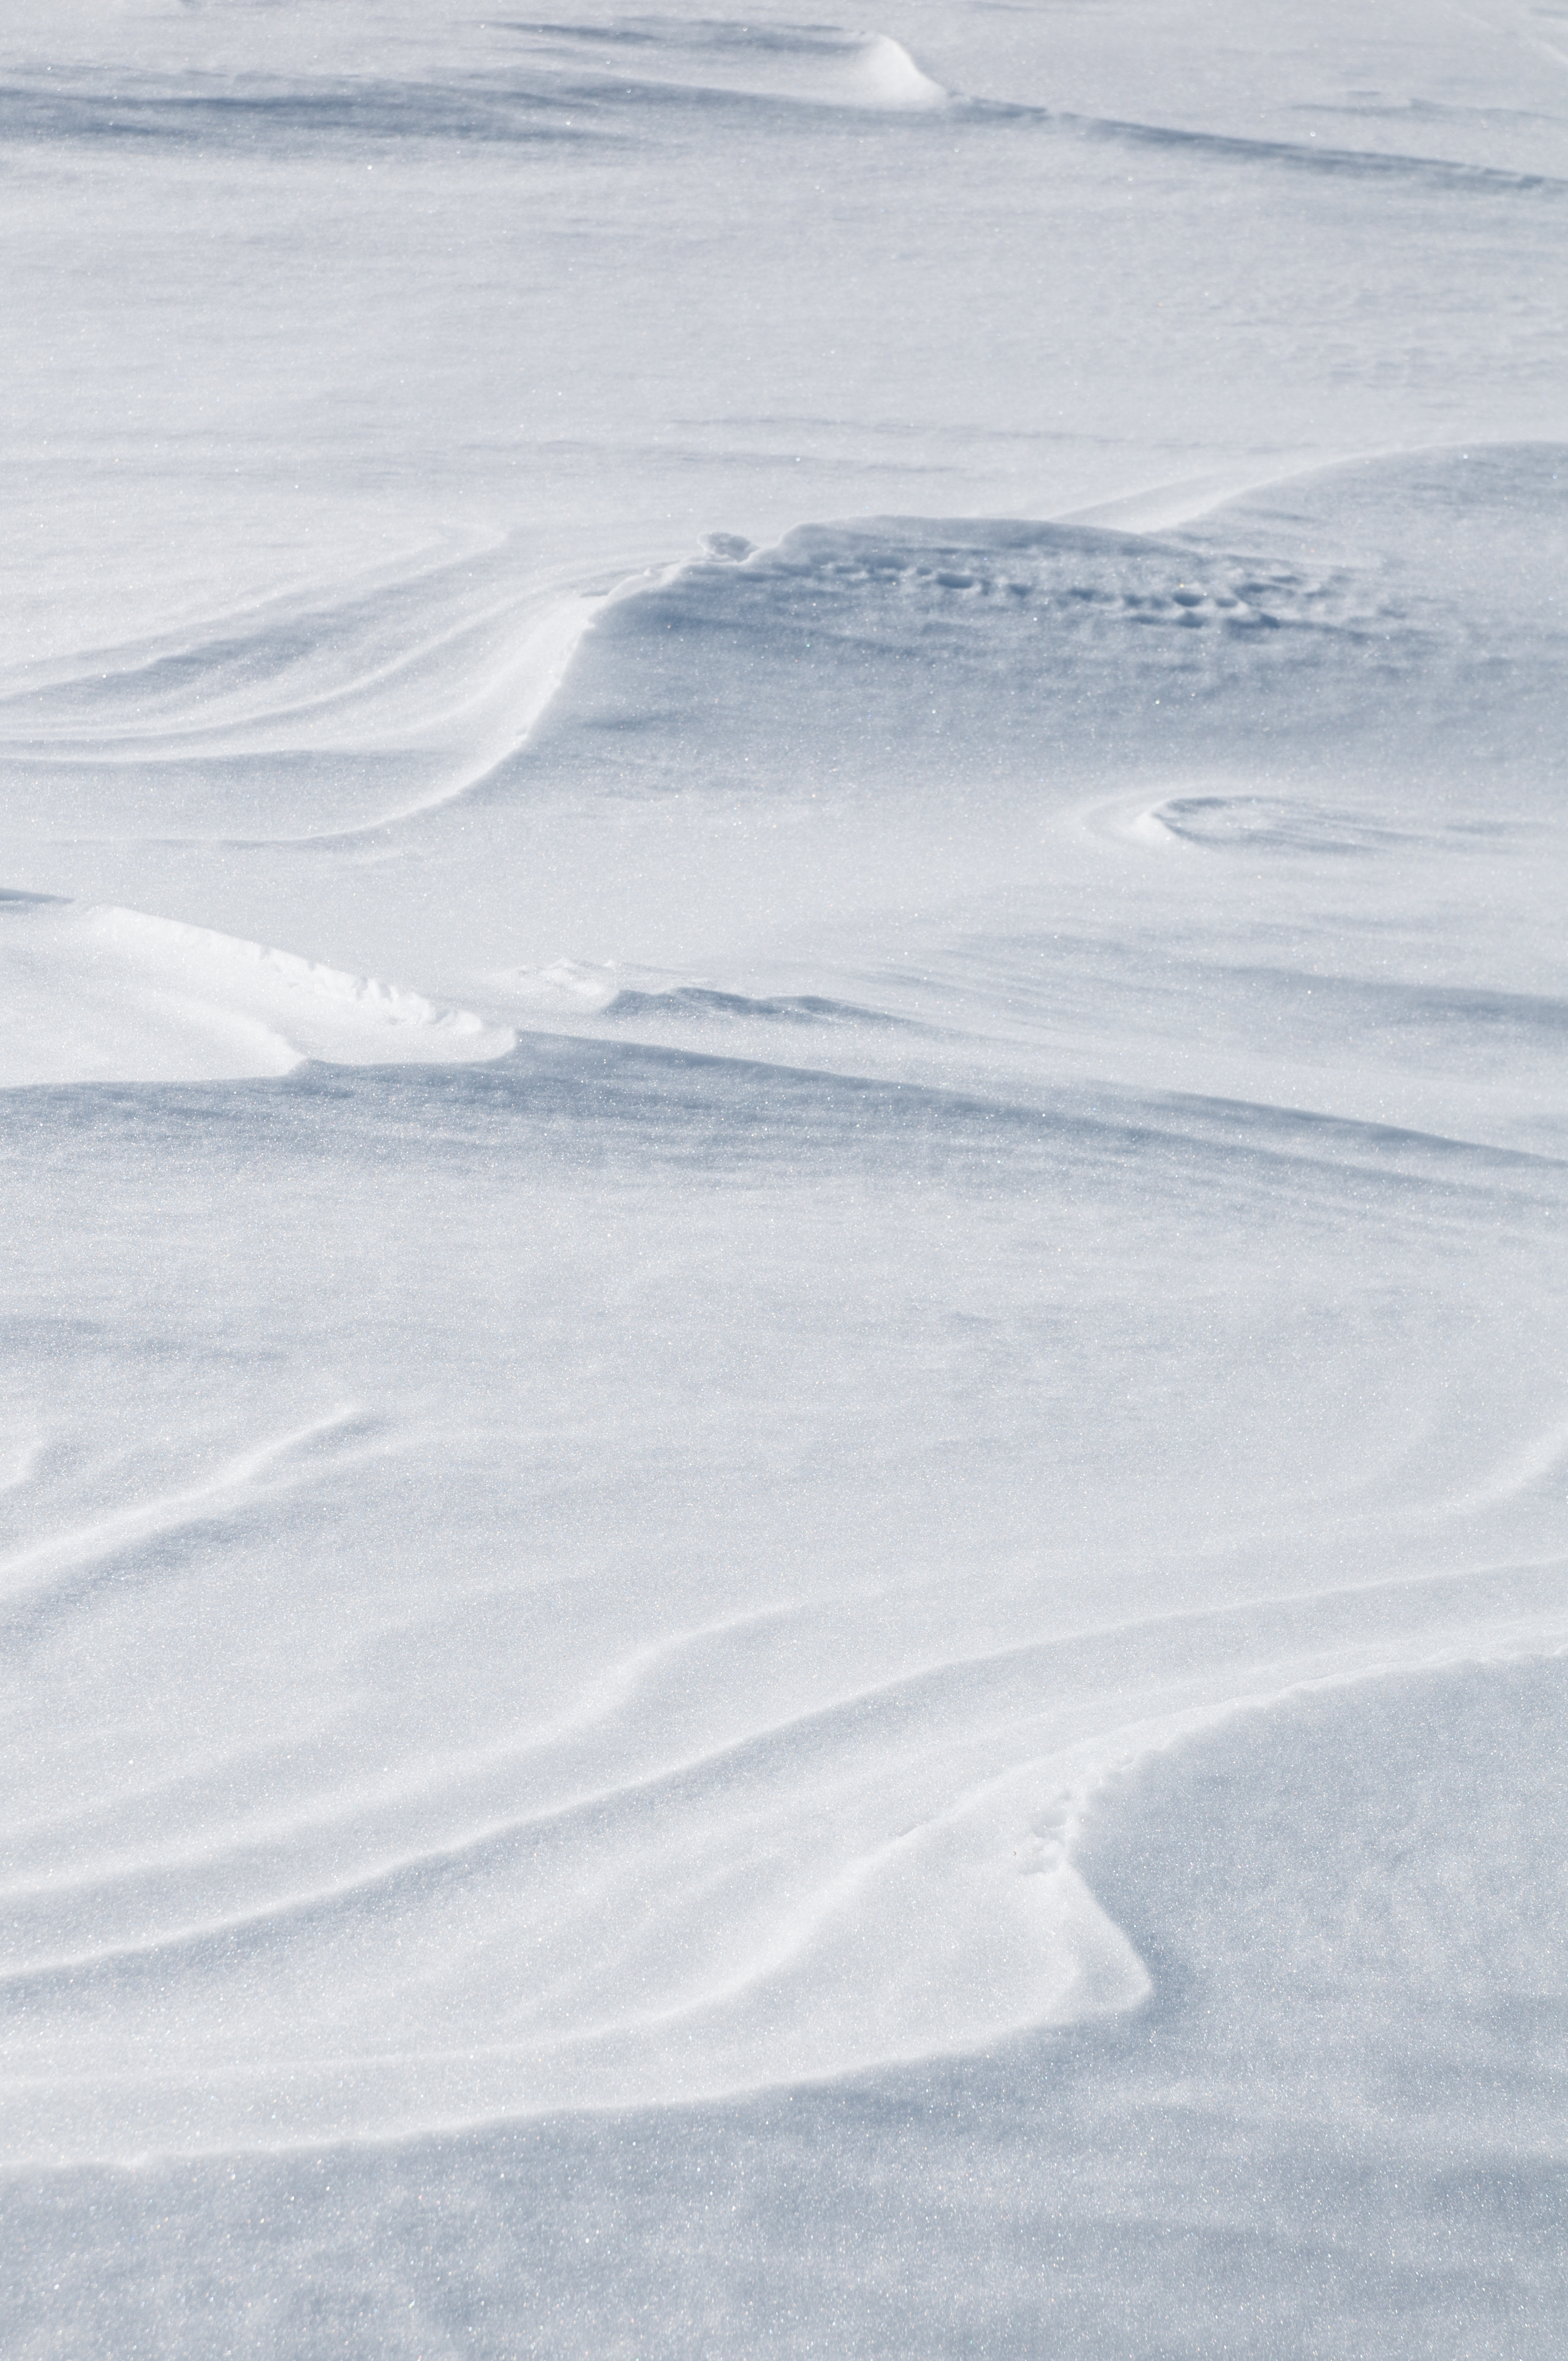 157021 download wallpaper Nature, Snow, Drifts, Winter screensavers and pictures for free